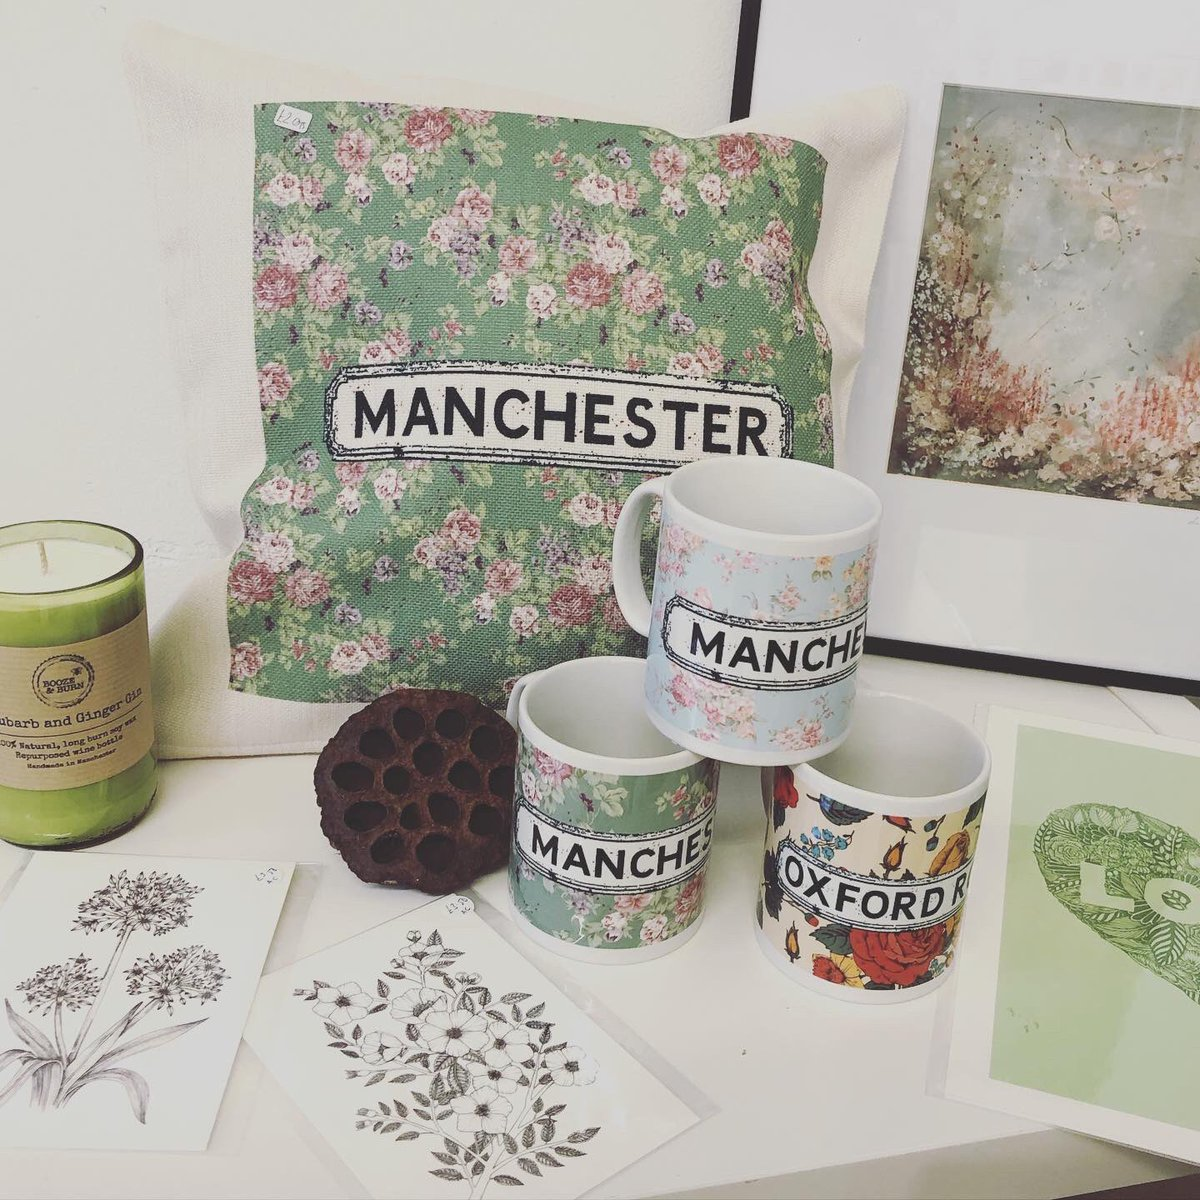 AND BREATHE 🌿In amongst the hustle and bustle of a busy city we have created a little bit of nature and calmness! NQ's creatives have created the NQ Natural collection with fine art florals, printed mugs & cushions, botanical illustrations and sea salt and wood sage candles 💚